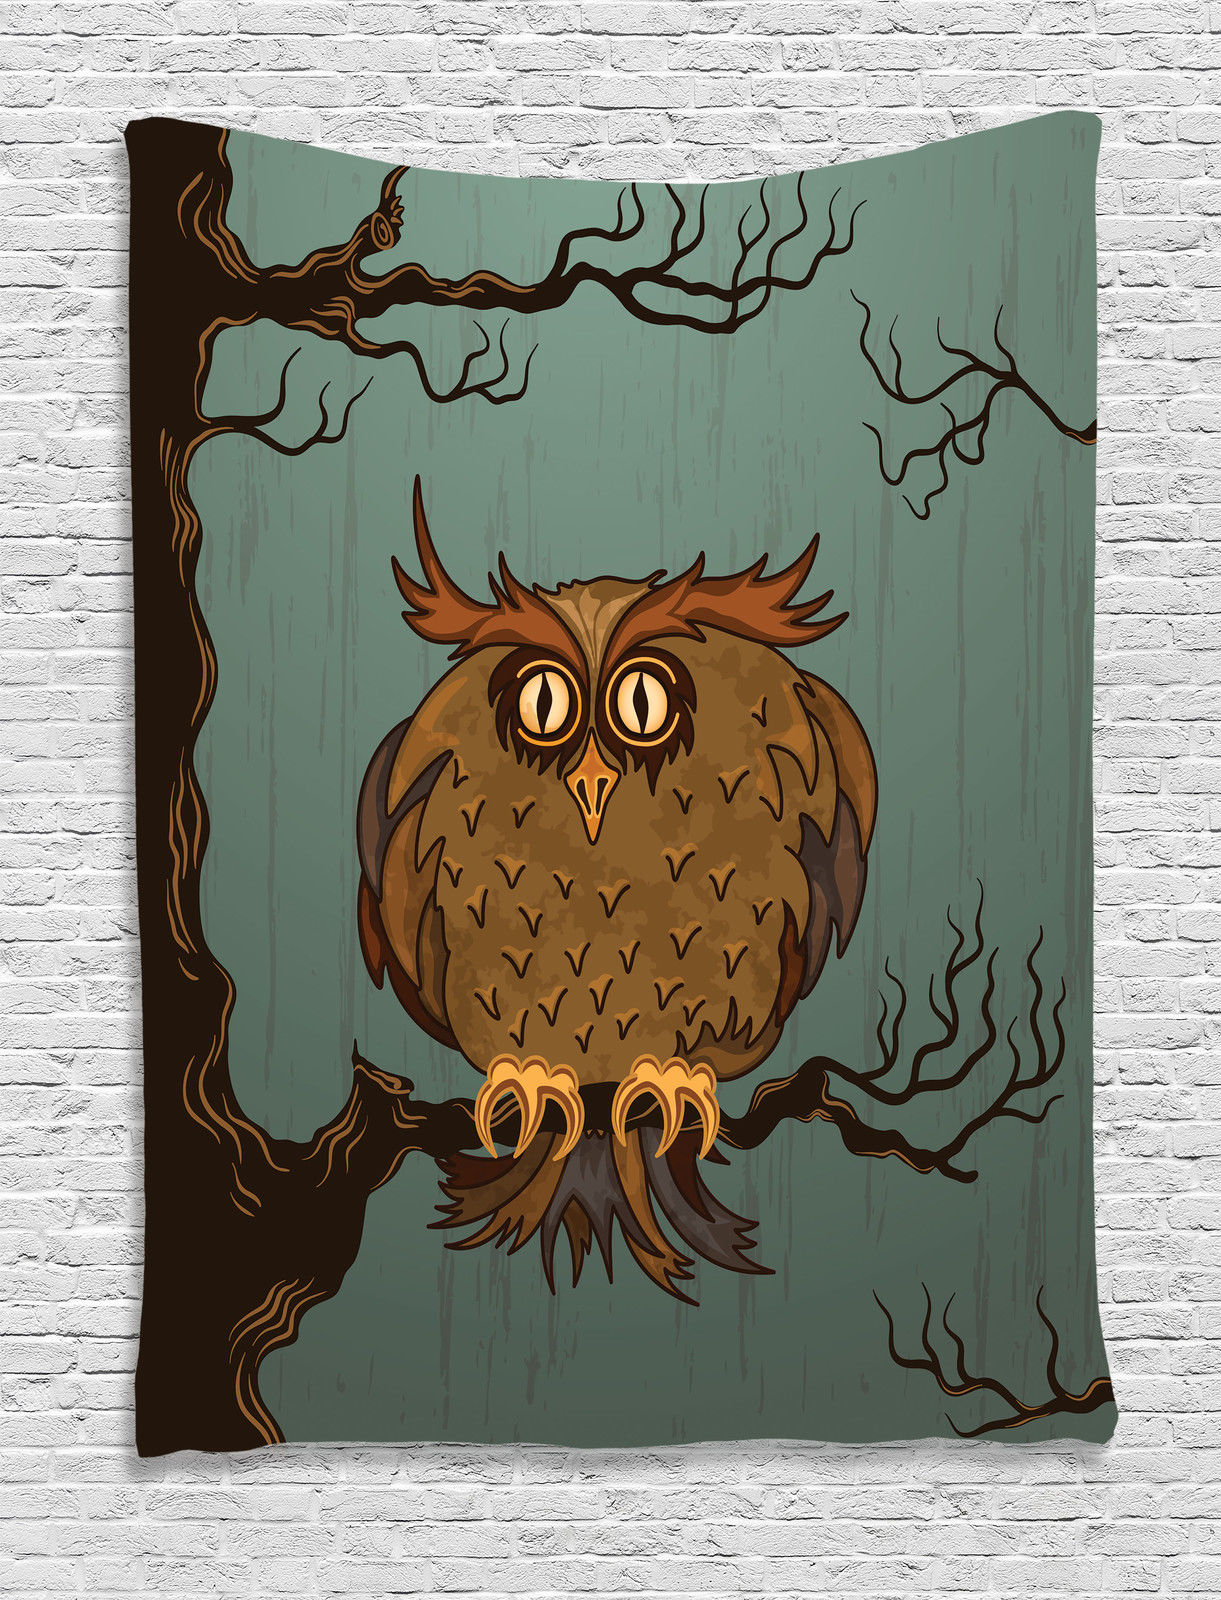 Owls Home Decor Wall Hanging Tapestry, Exhausted Hangover Tired Owl In Oak  Tree With Eyebrows Nature Cartoon Fun Artwork, Bedroom Living Room Dorm ...